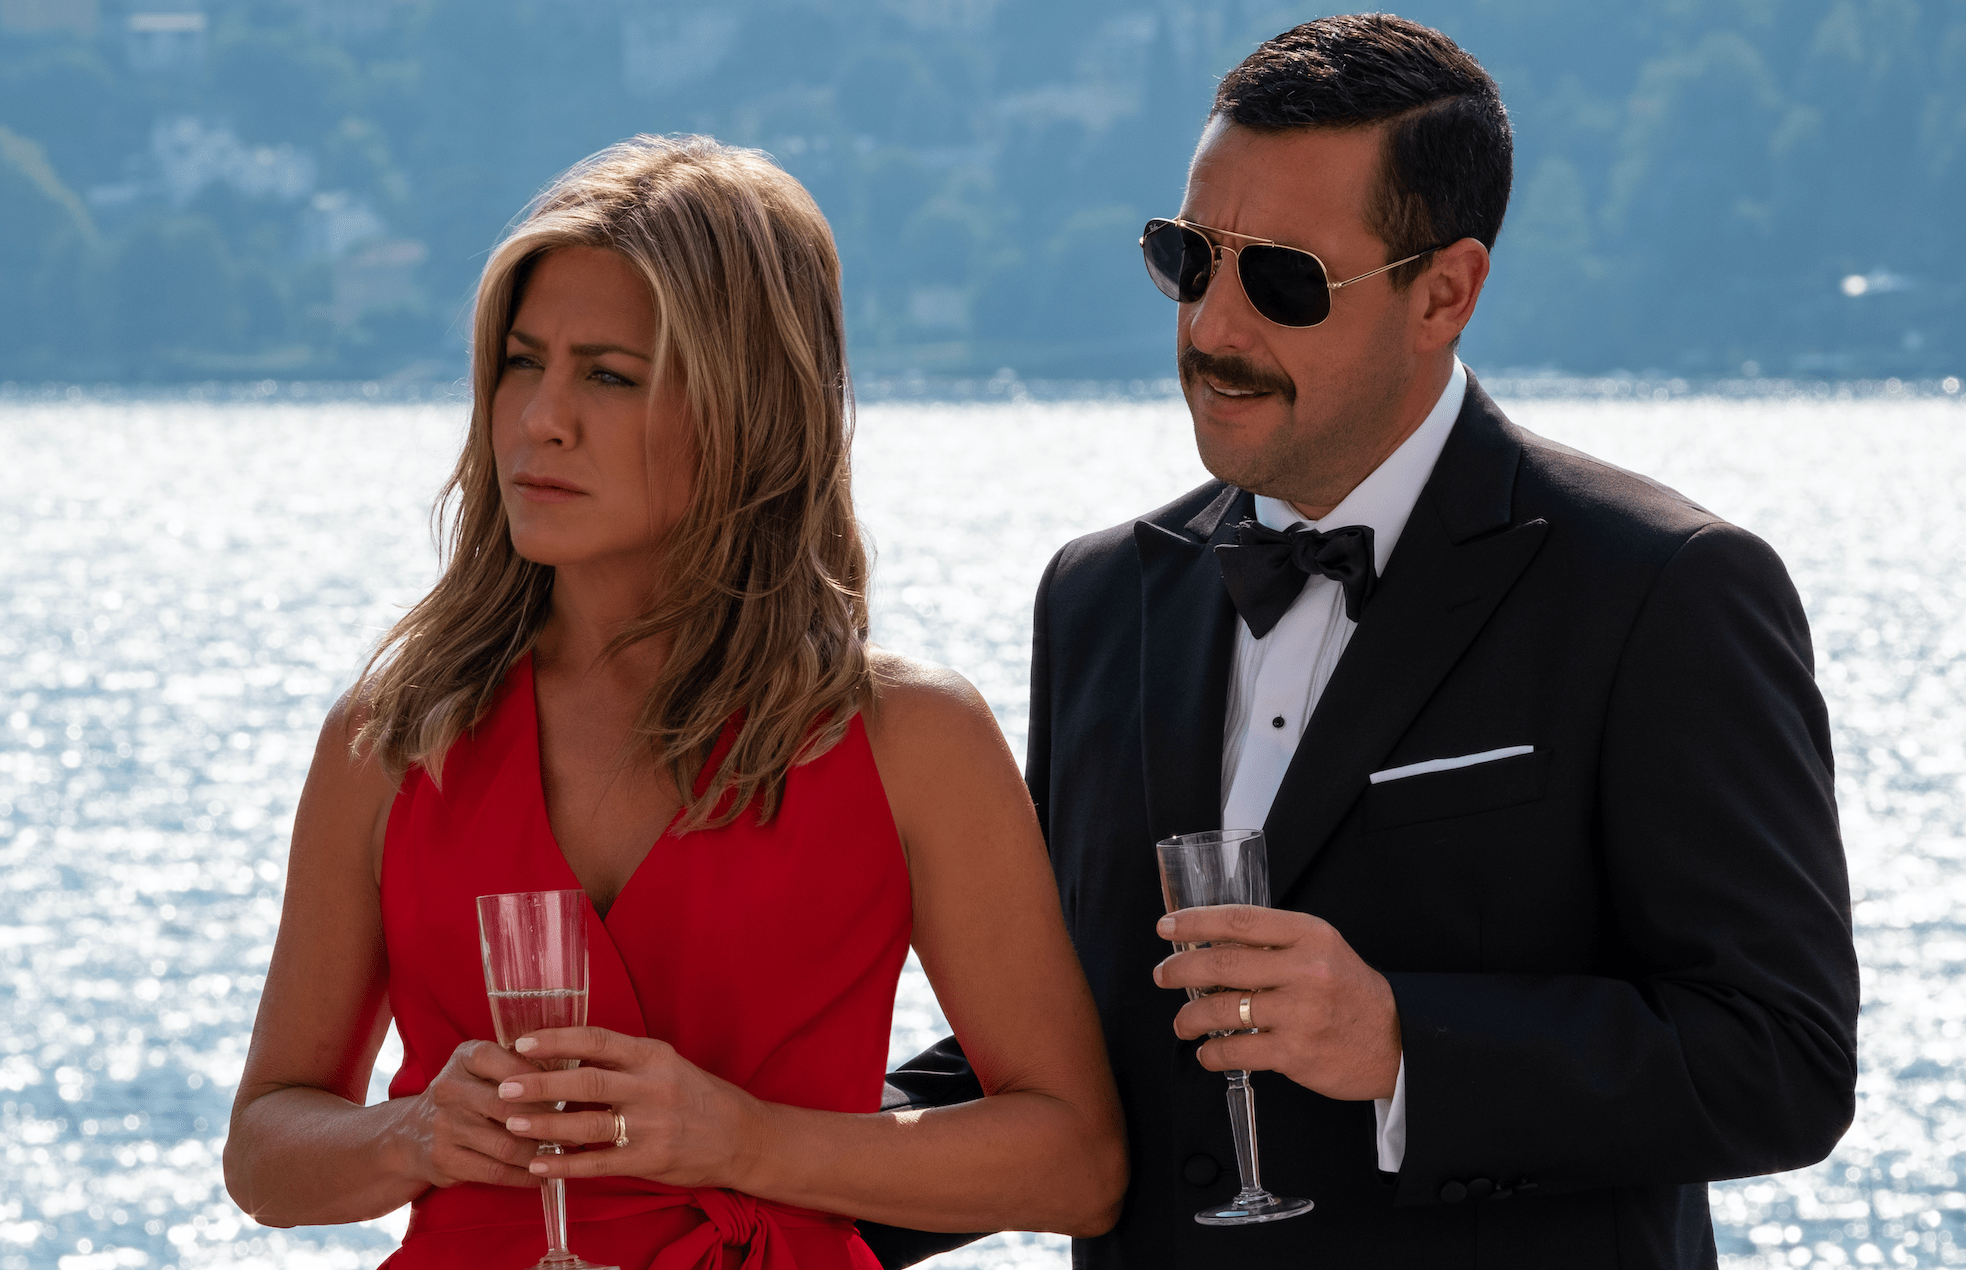 Jennifer Aniston and Adam Sandler in Murder Mystery